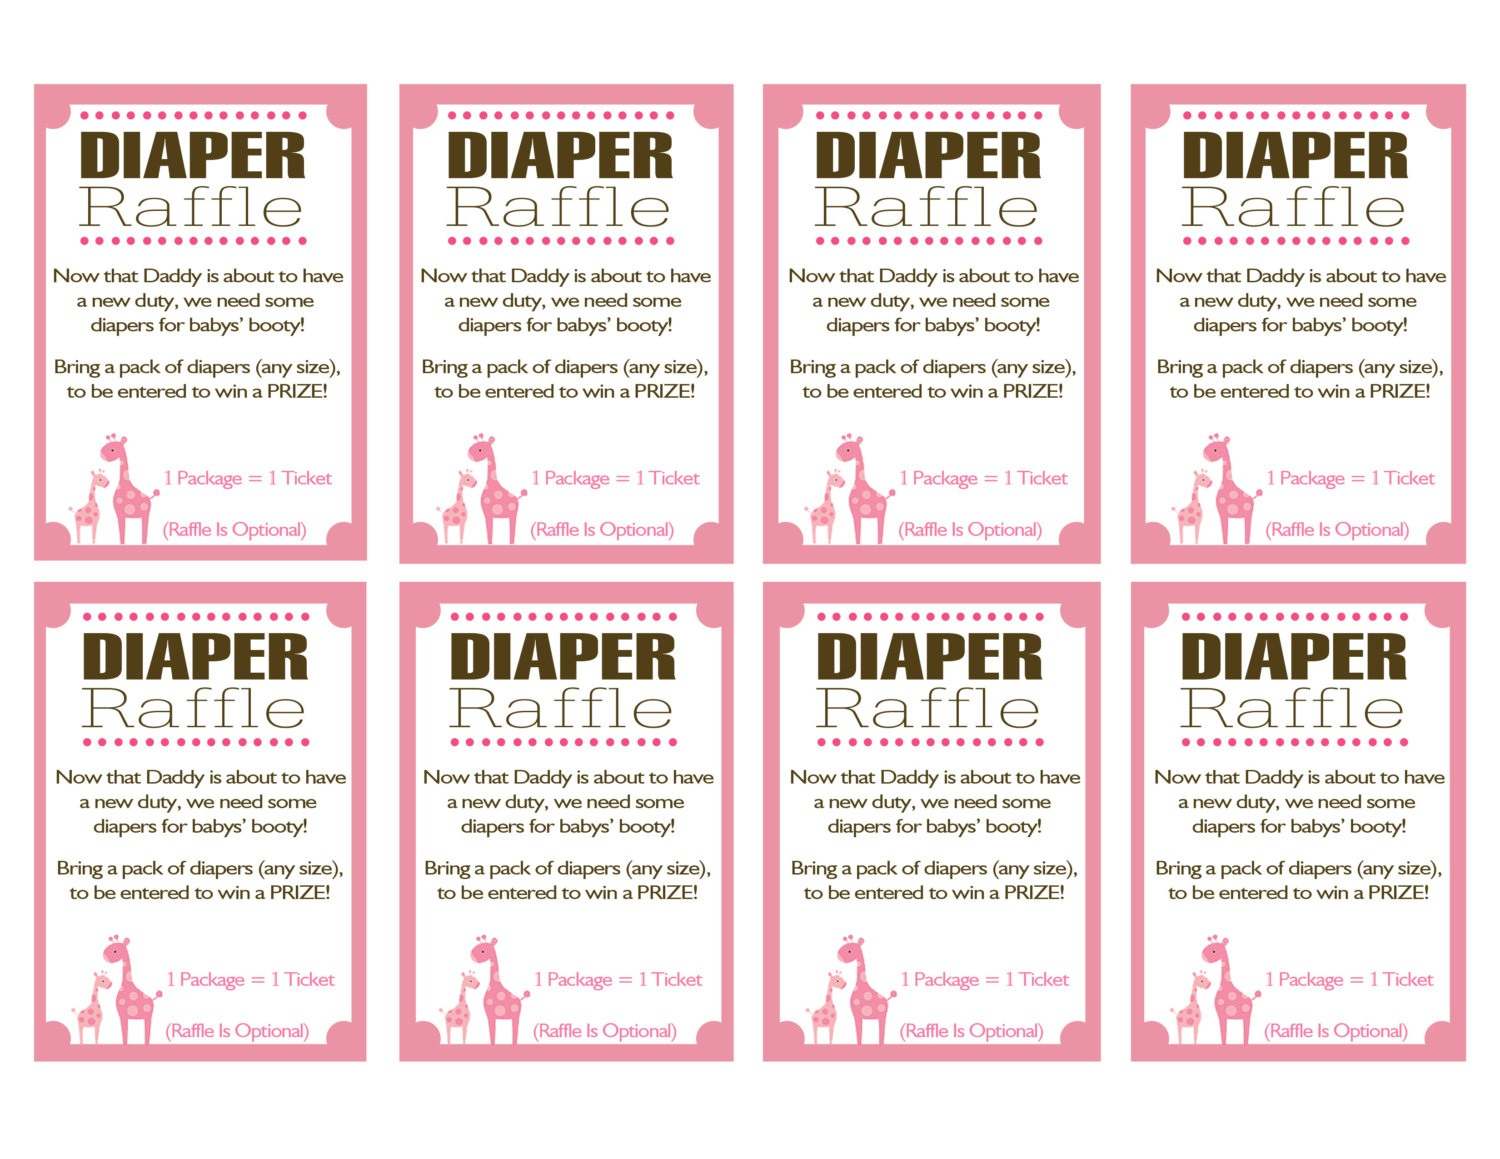 Free Printable Baby Shower Raffle Tickets Template Home Design Ideas - Free Printable Diaper Raffle Tickets